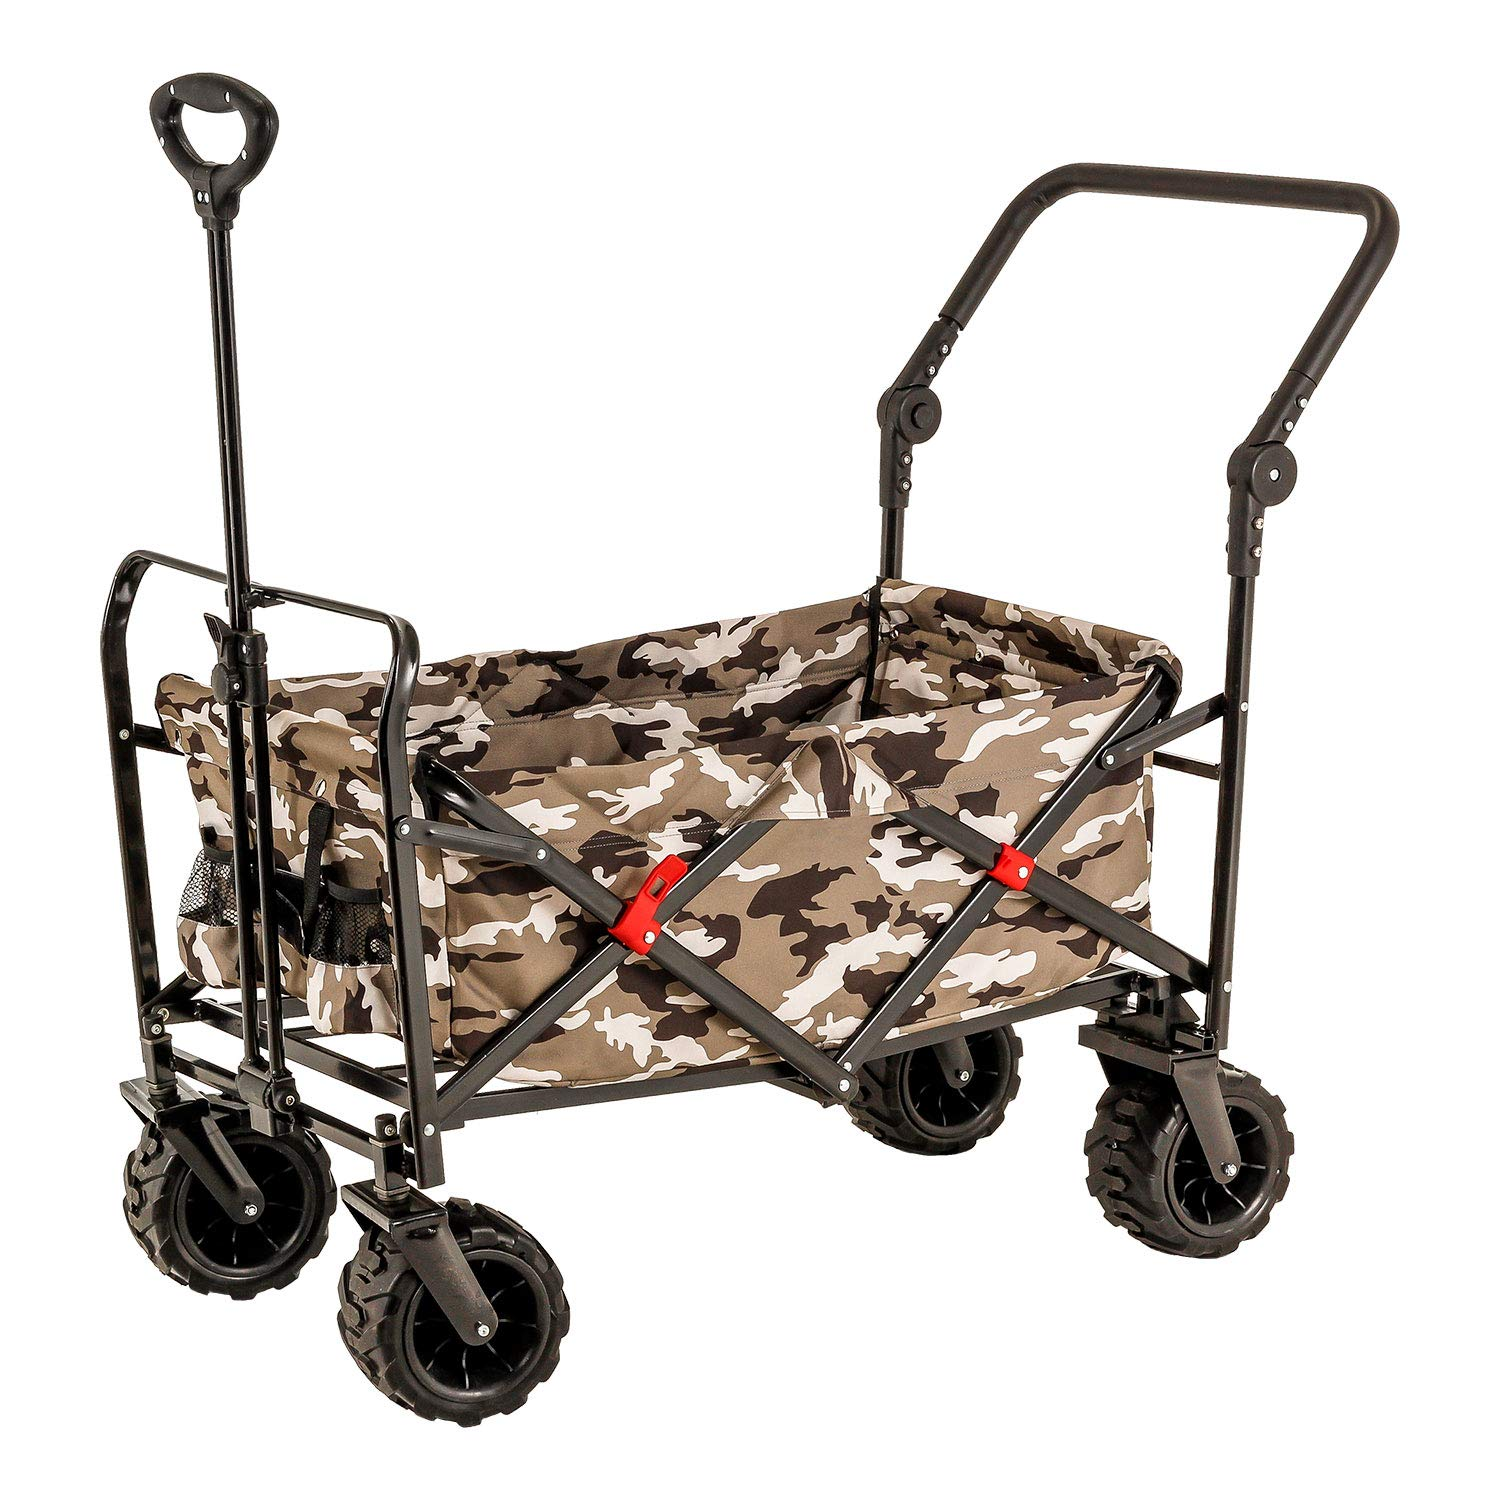 Camouflage Wide Wheel Wagon All Terrain Folding Collapsible Utility Wagon with Push Bar - Portable Rolling Heavy Duty 265 Lb Capacity Canvas Fabric Cart Buggy - Beach, Garden, Sporting Events, Picnic by TCP Global